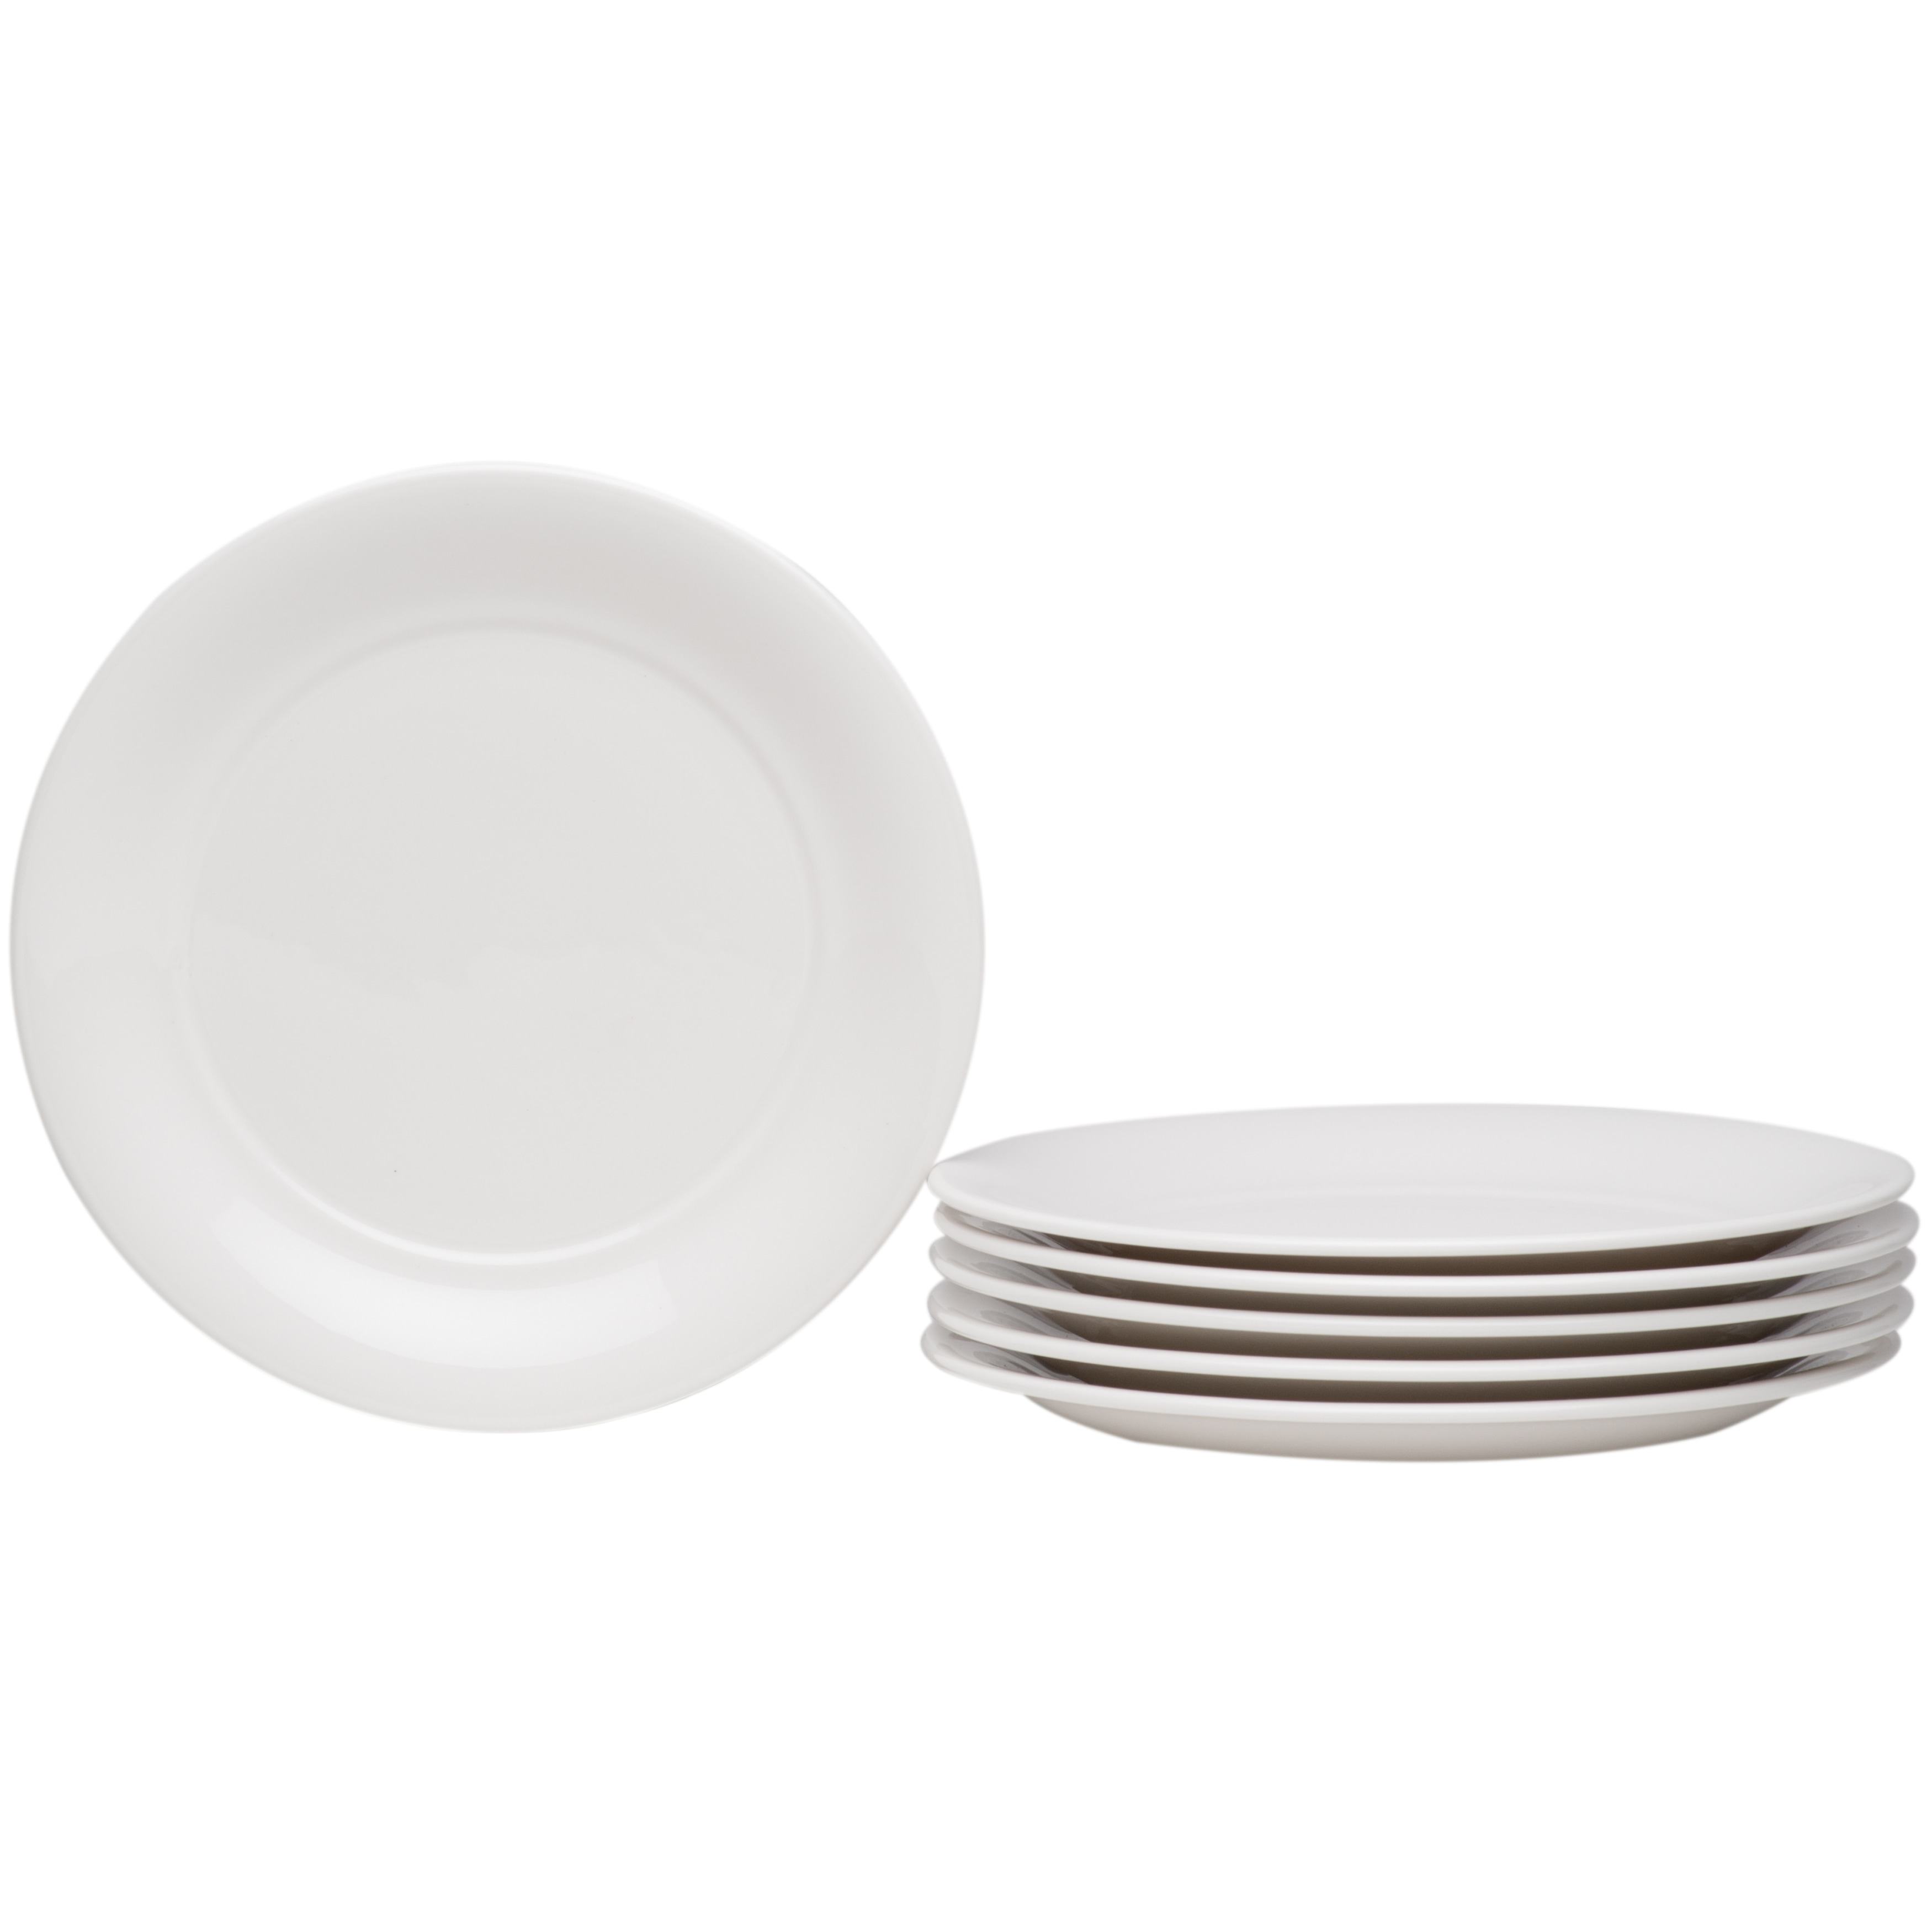 Hospitality White Bread Butter Plate Set Of 6 Overstock 17375028